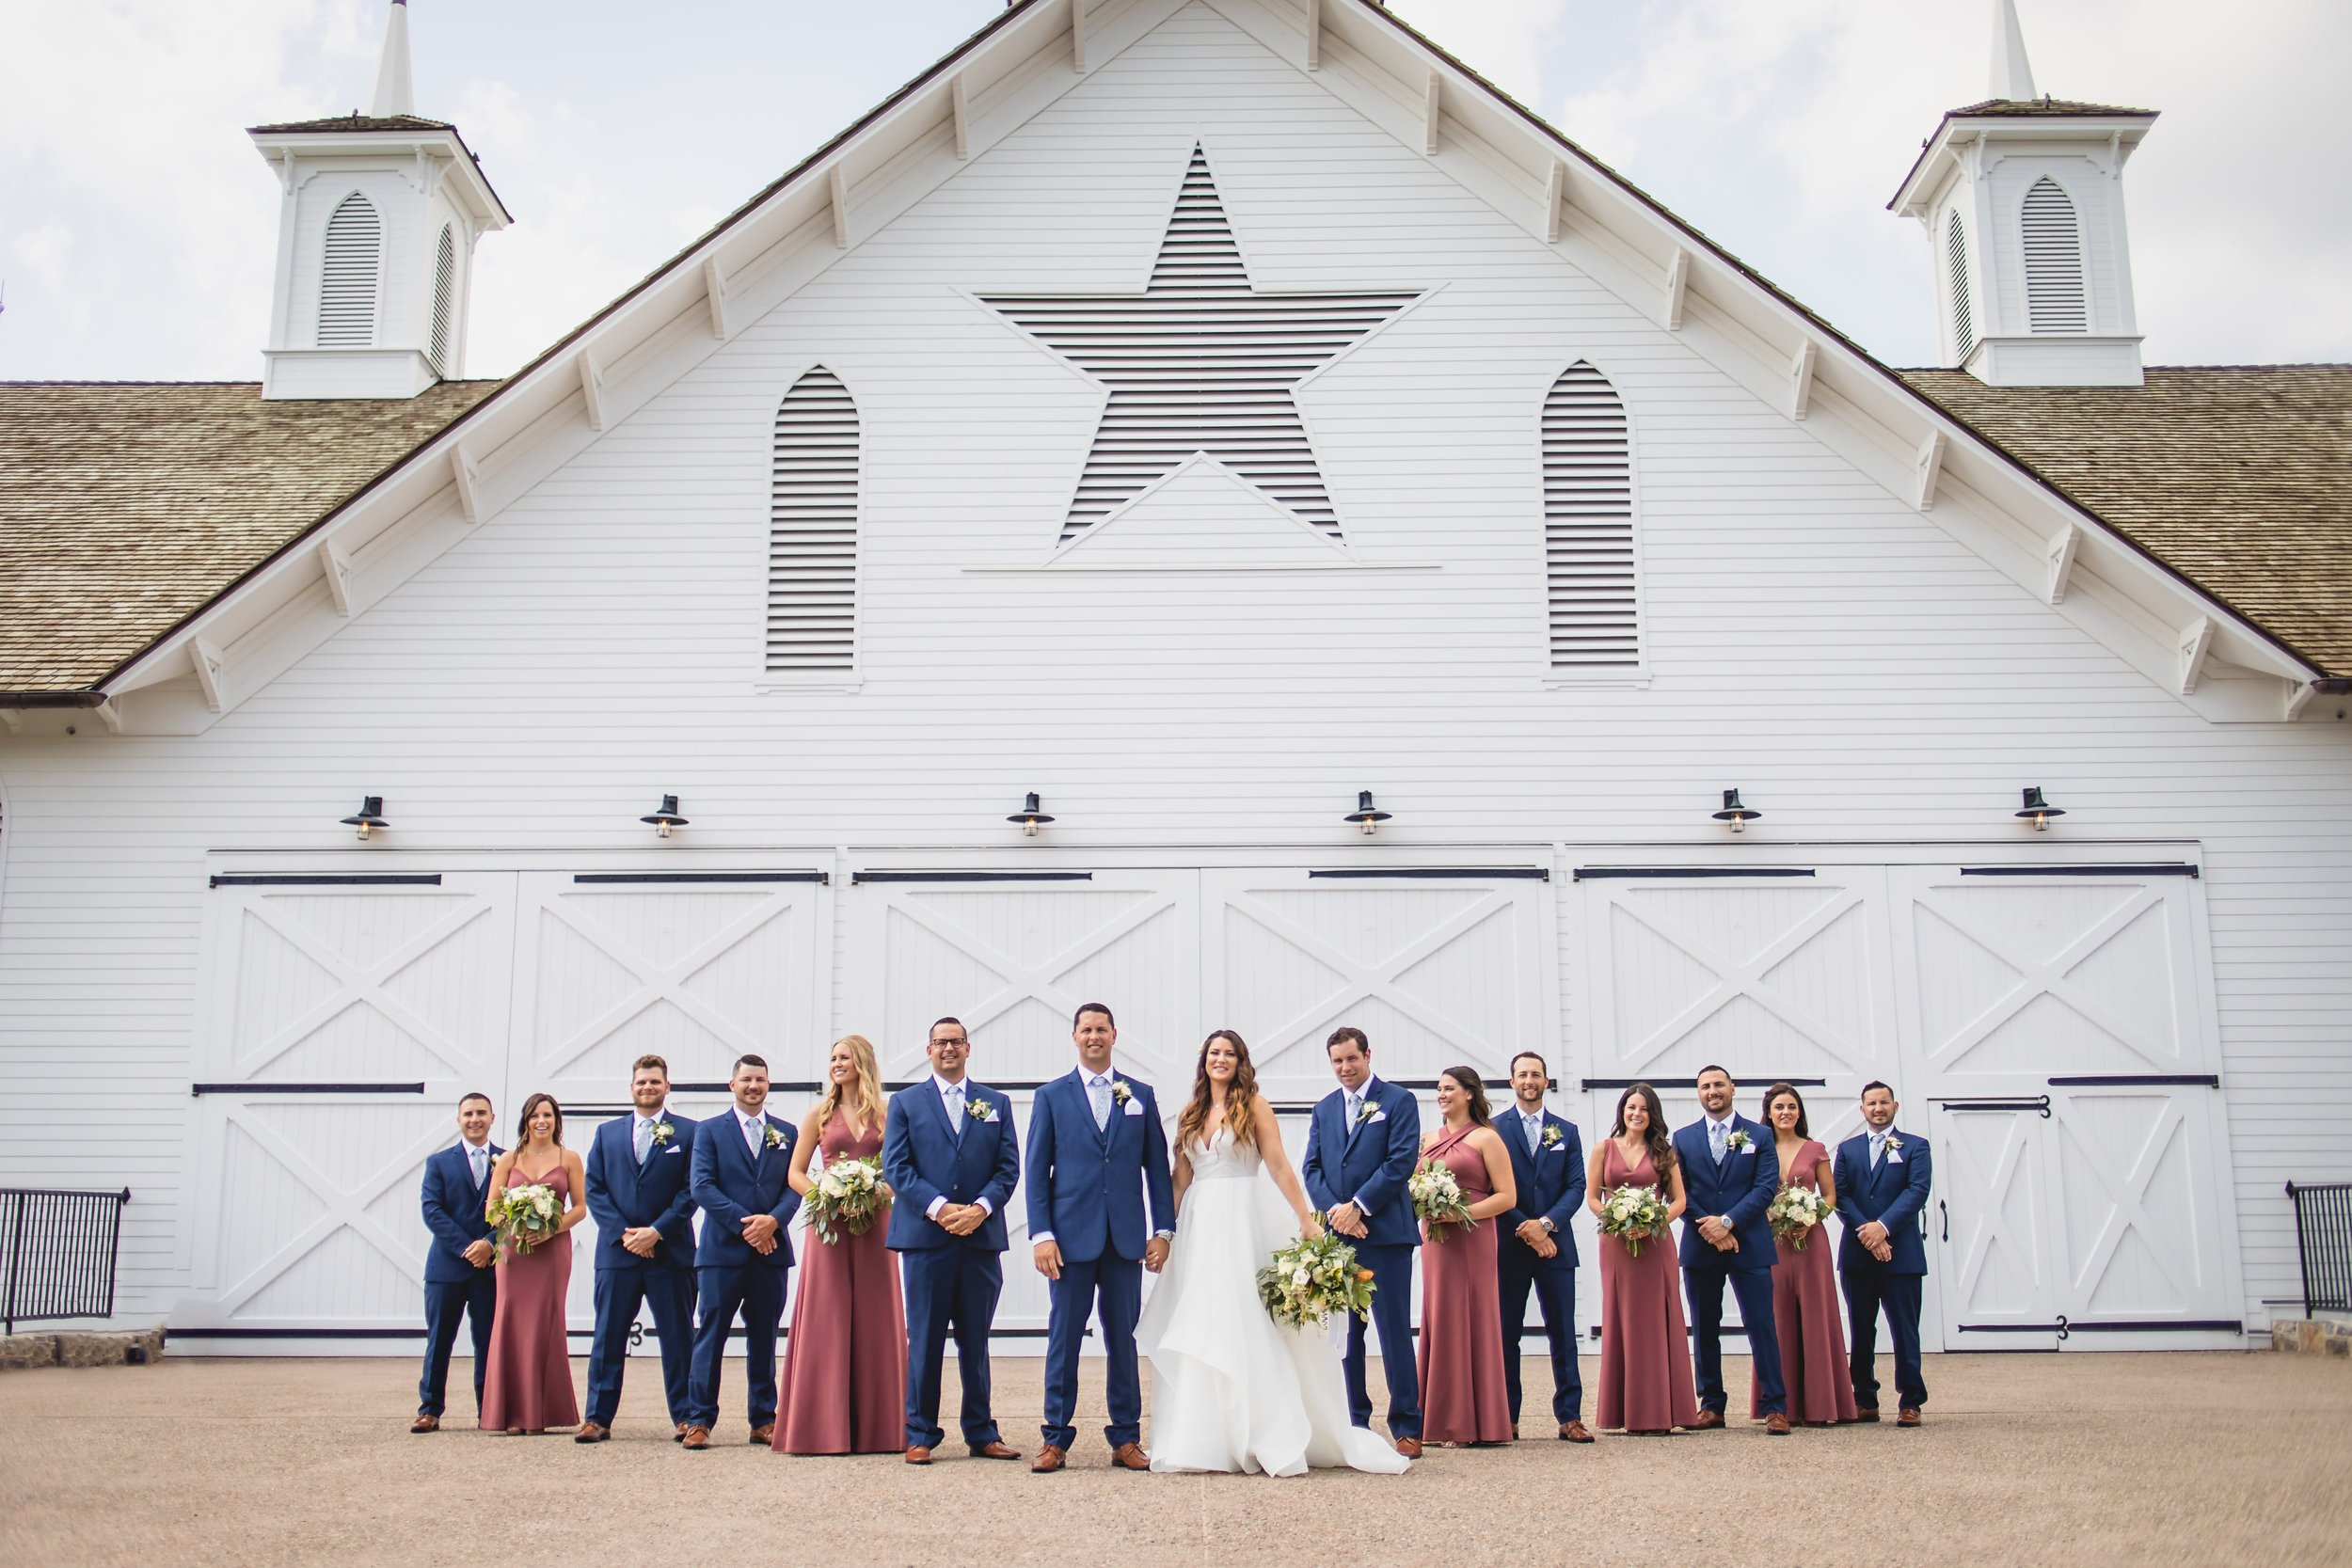 The bridal party standing in a V-formation in front of the star barn wedding venue.